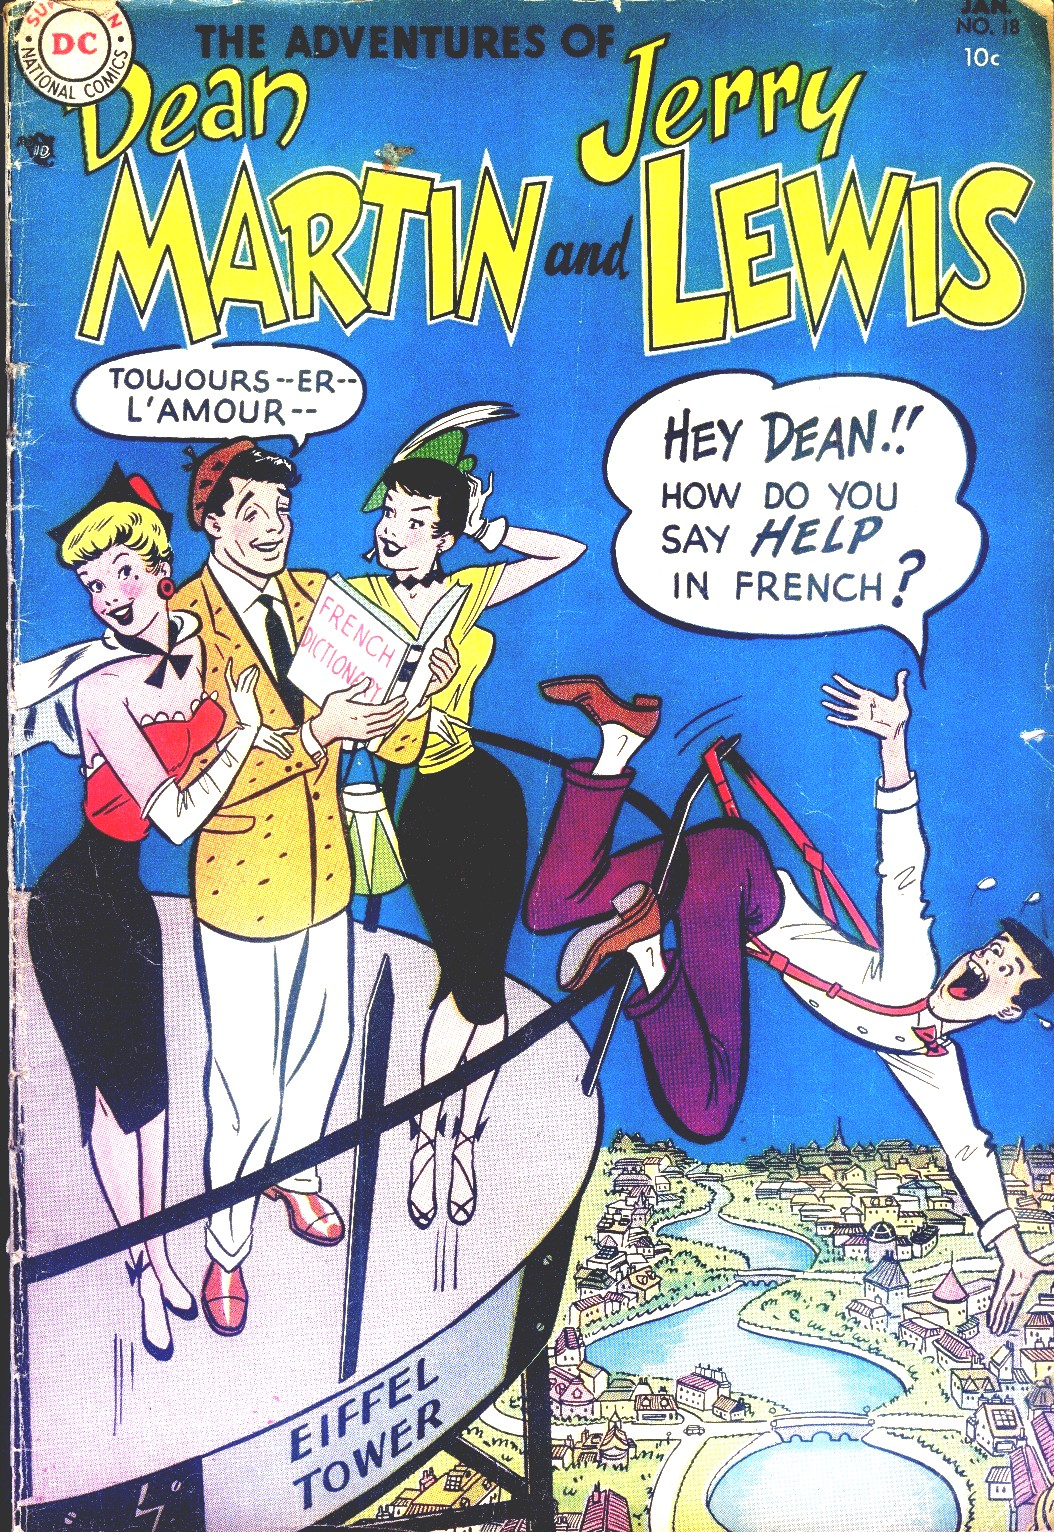 The Adventures of Dean Martin and Jerry Lewis 18 Page 1